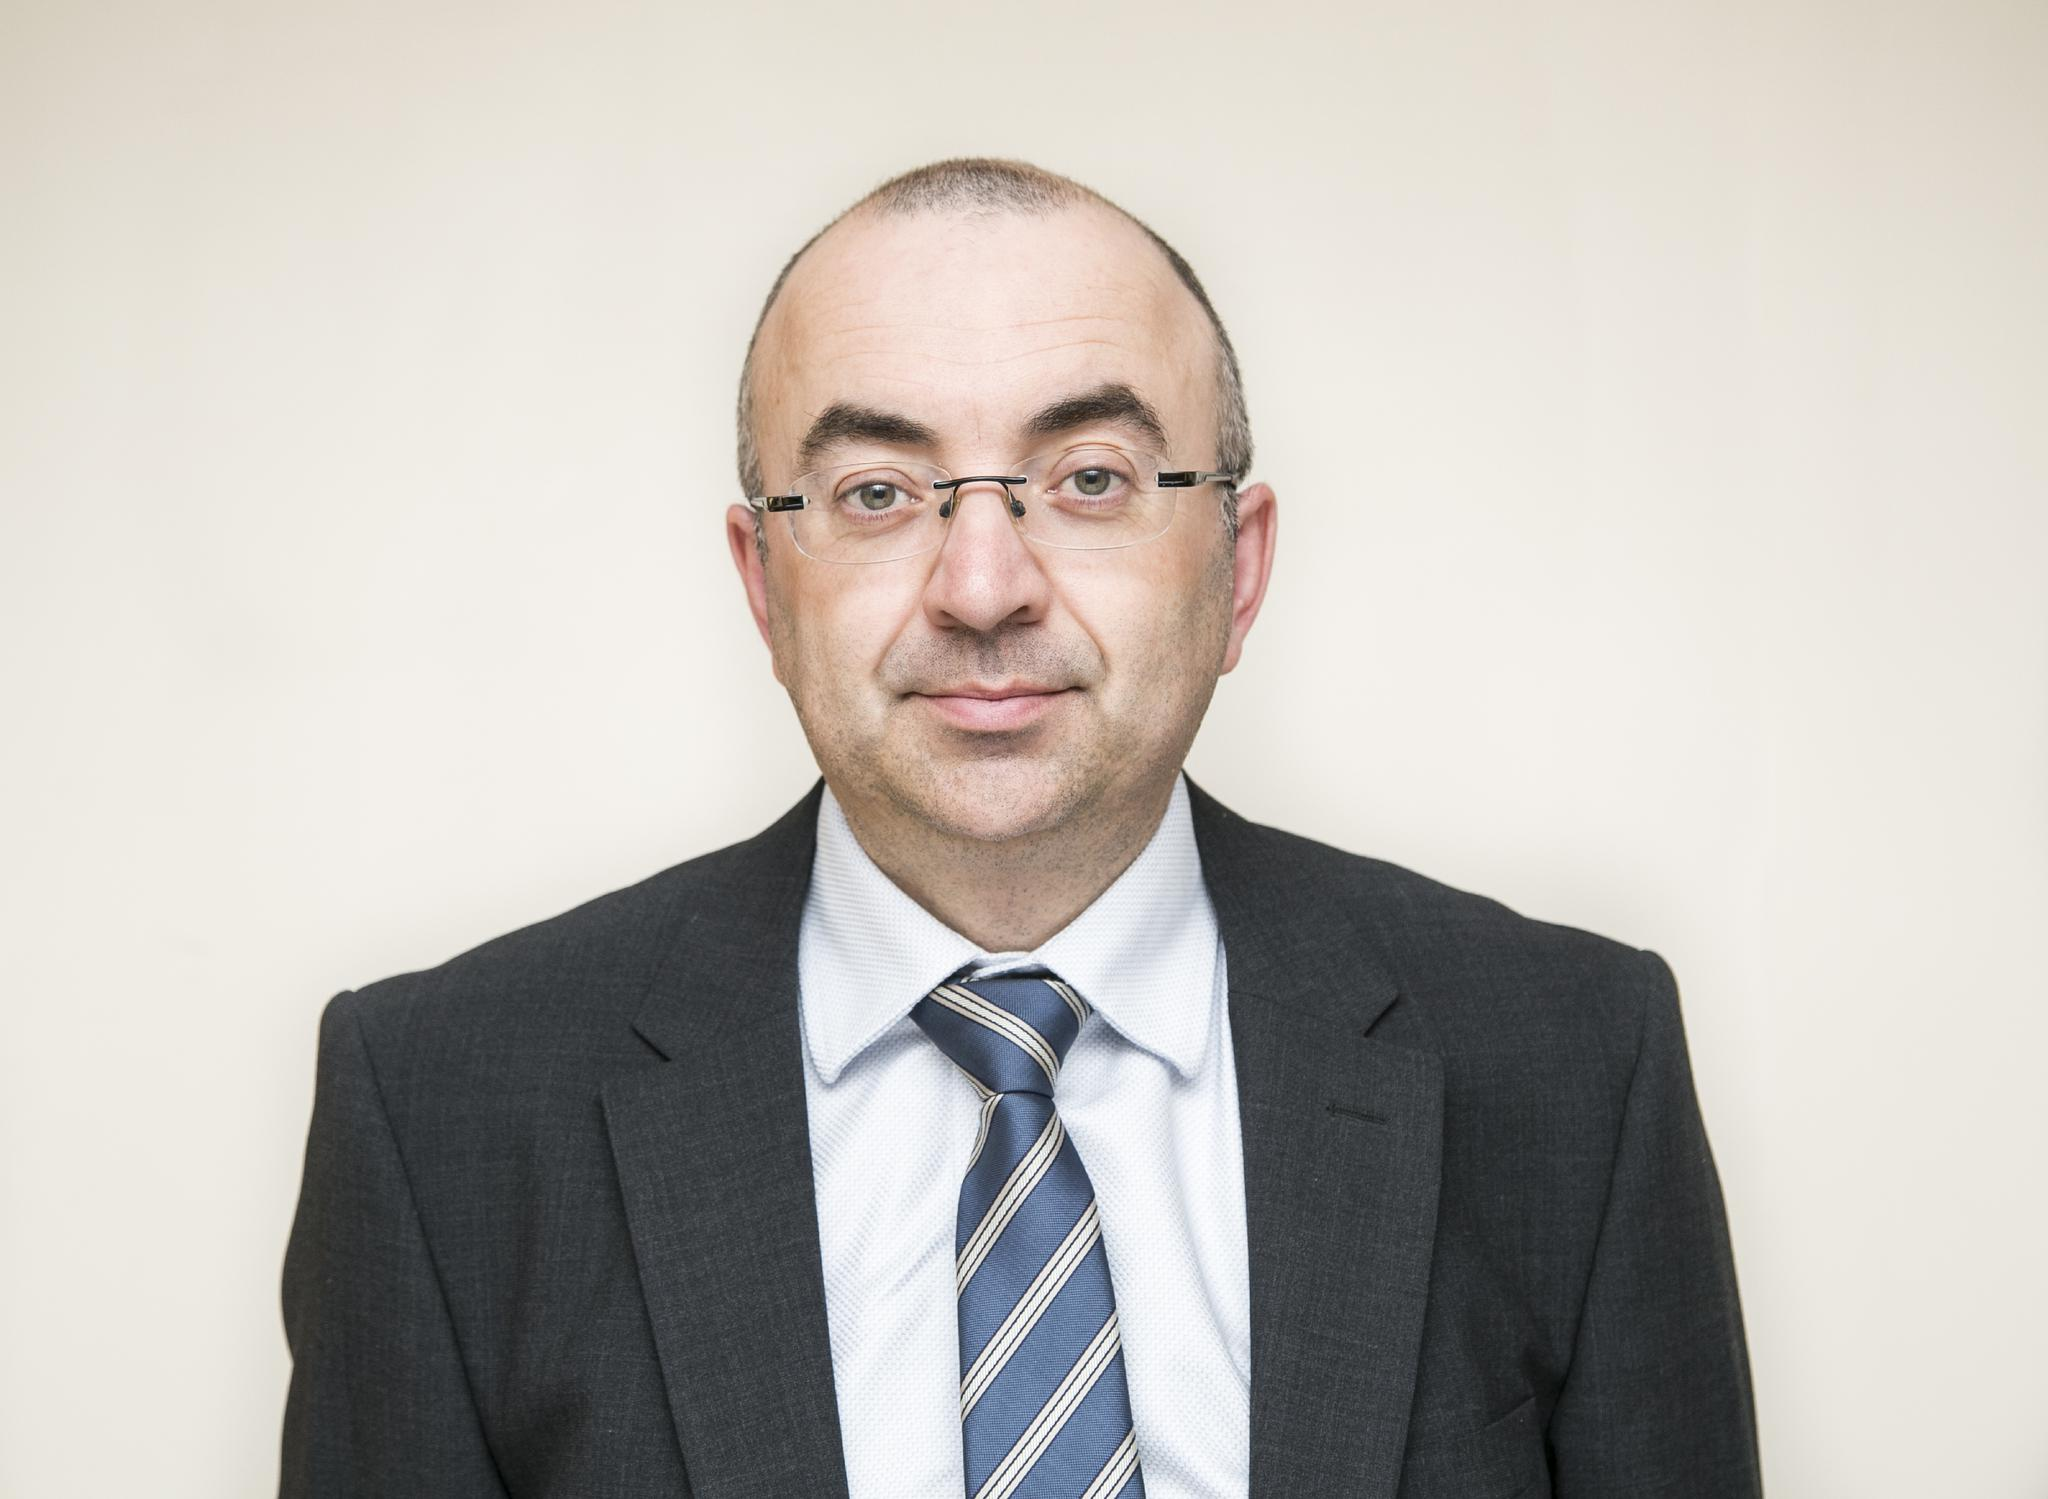 Chris Connors